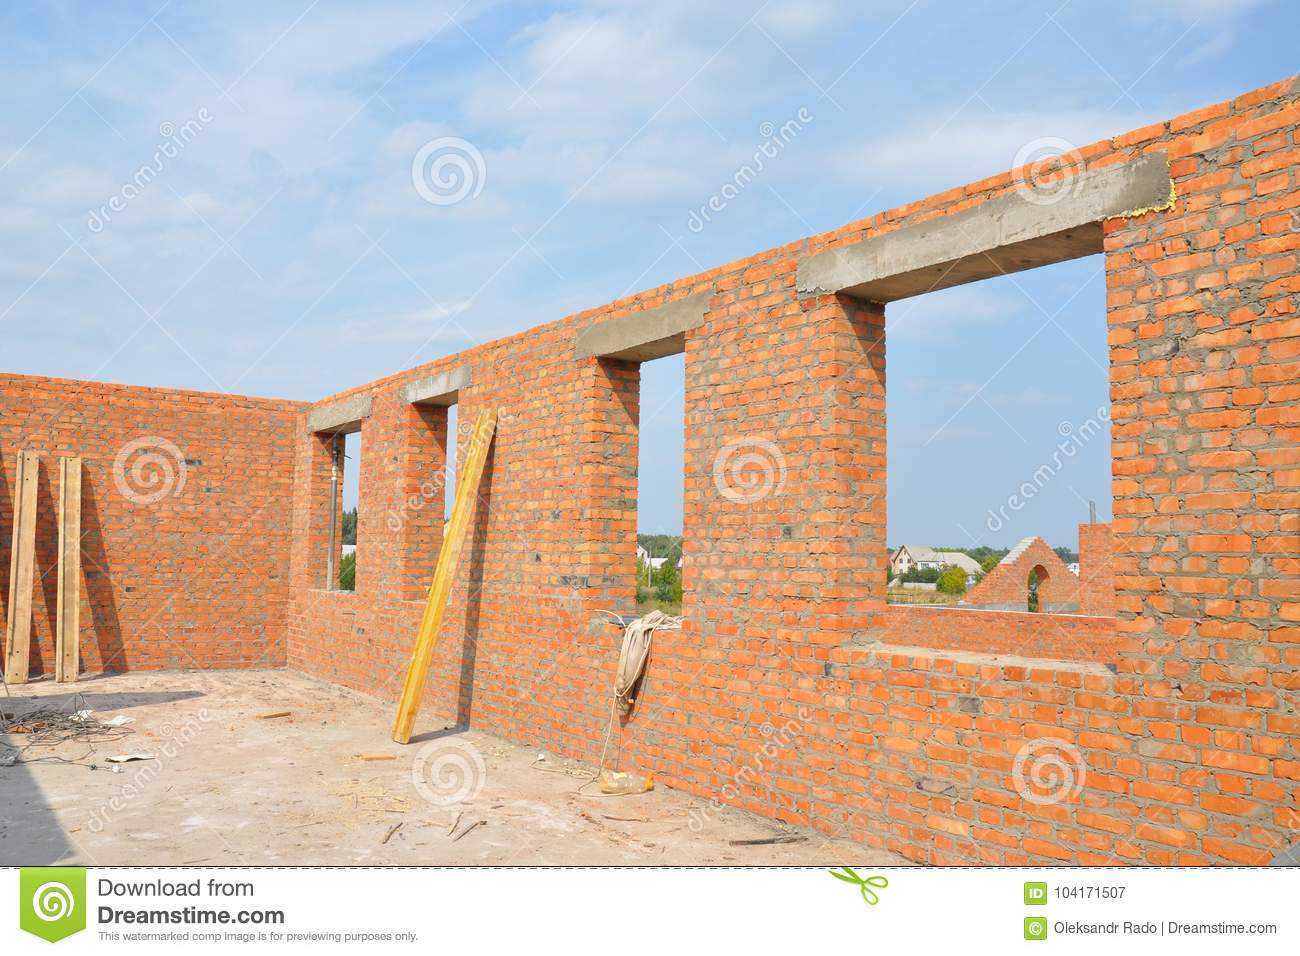 Unfinished Red Brick House Wall Under Construction Without Roofing